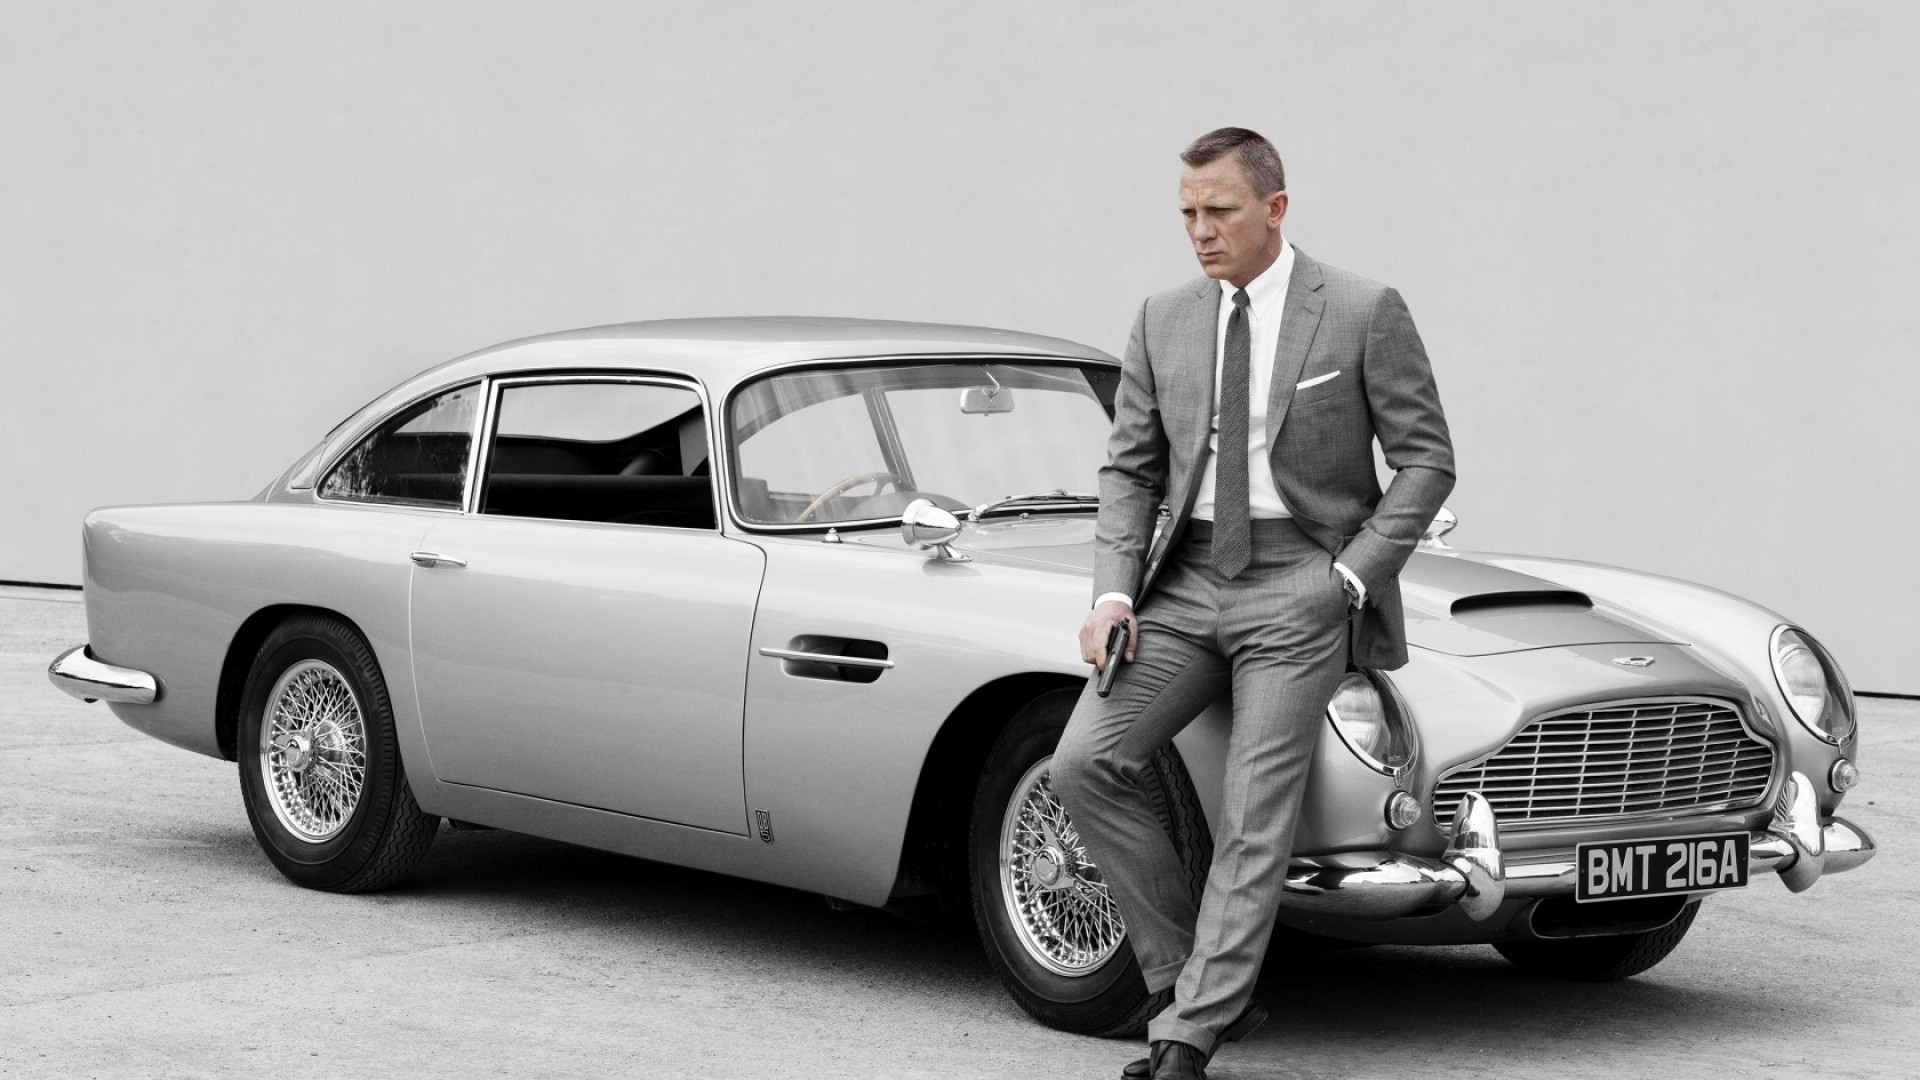 james bond wallpaper ·① download free cool high resolution